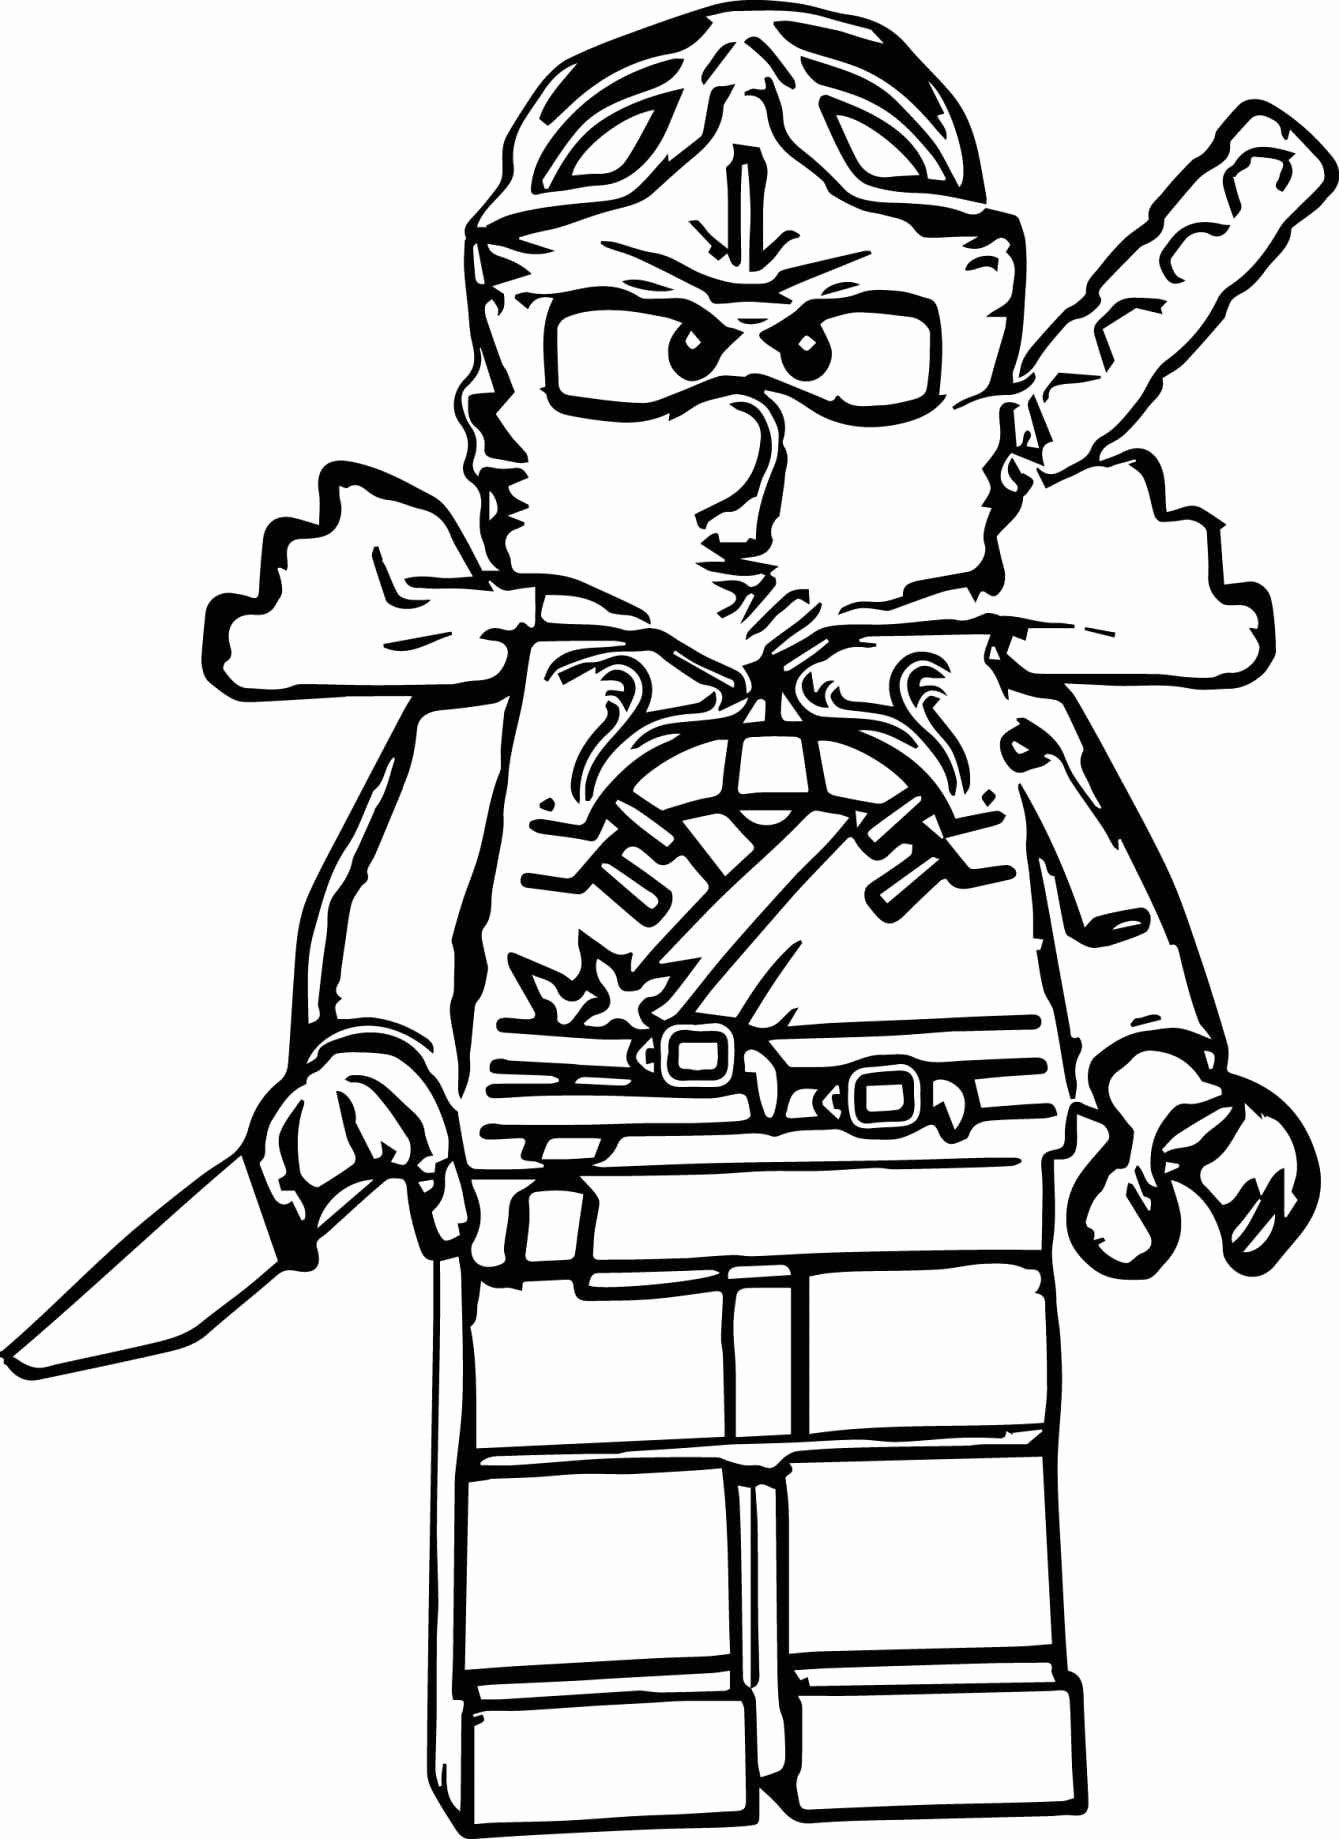 Kai Ninjago Coloring Page Lovely Coloring Coloring Lego Ninjago Kai Pages Ninja At Ninjago Coloring Pages Coloring Pages For Kids Coloring Pages For Boys